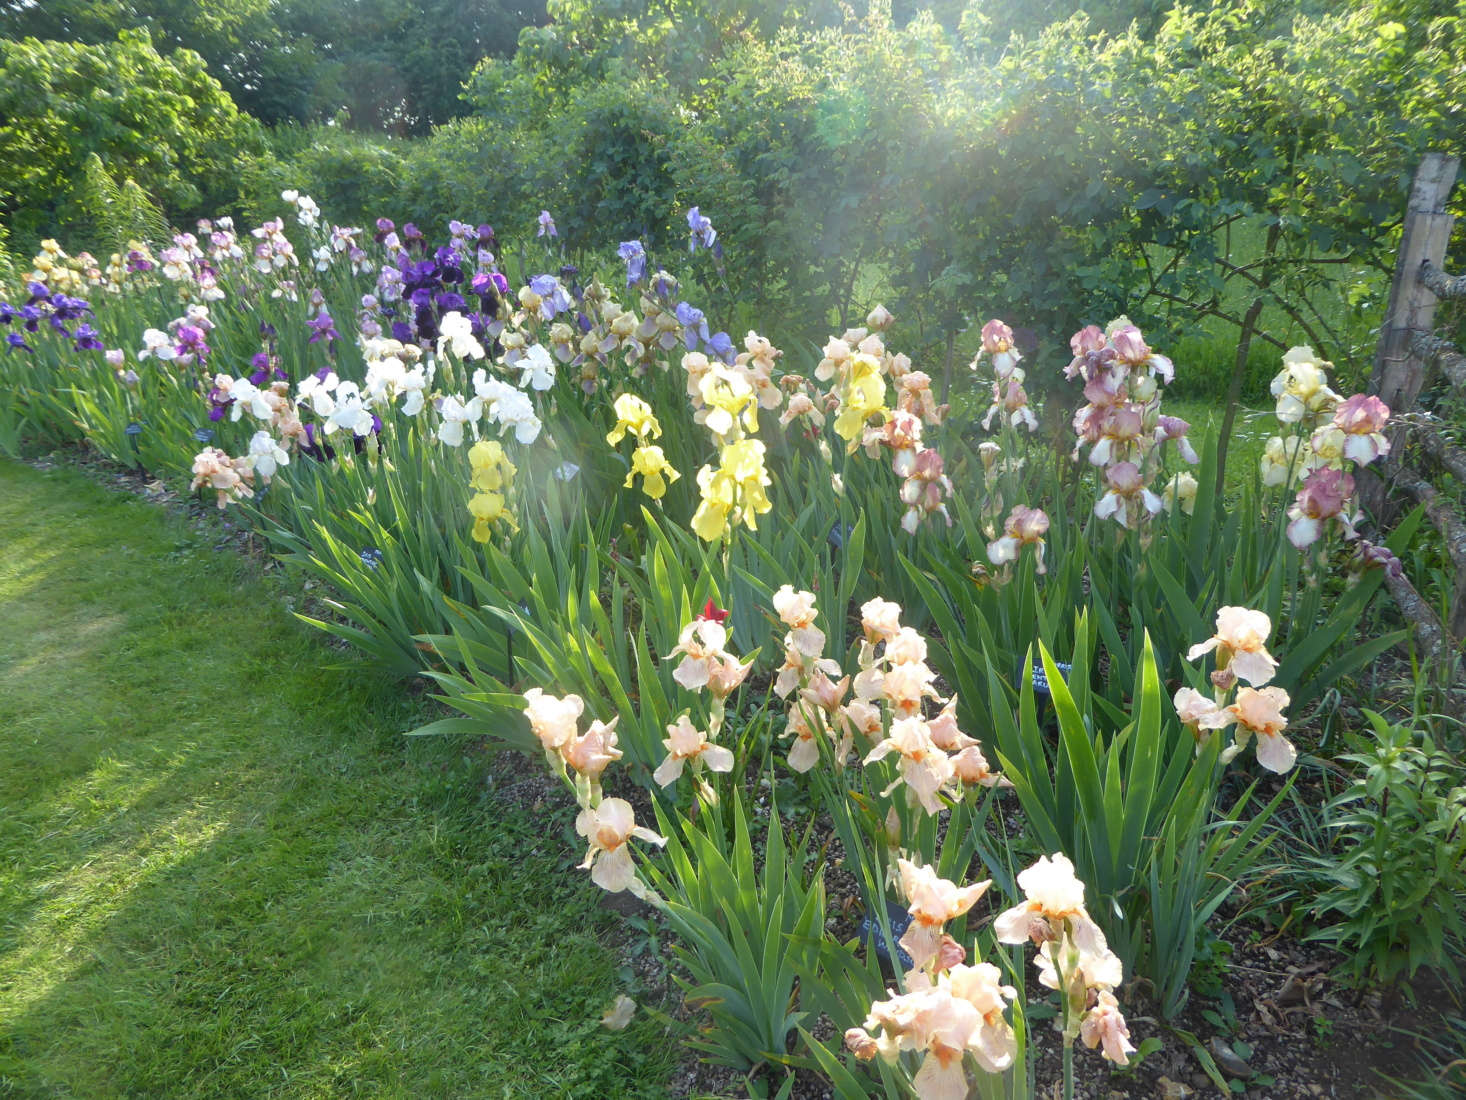 Some plants, like the bearded iris, need to be divided and transplanted to thrive. Photograph by Clare Coulson, from Everything You Need to Know About Bearded Iris.